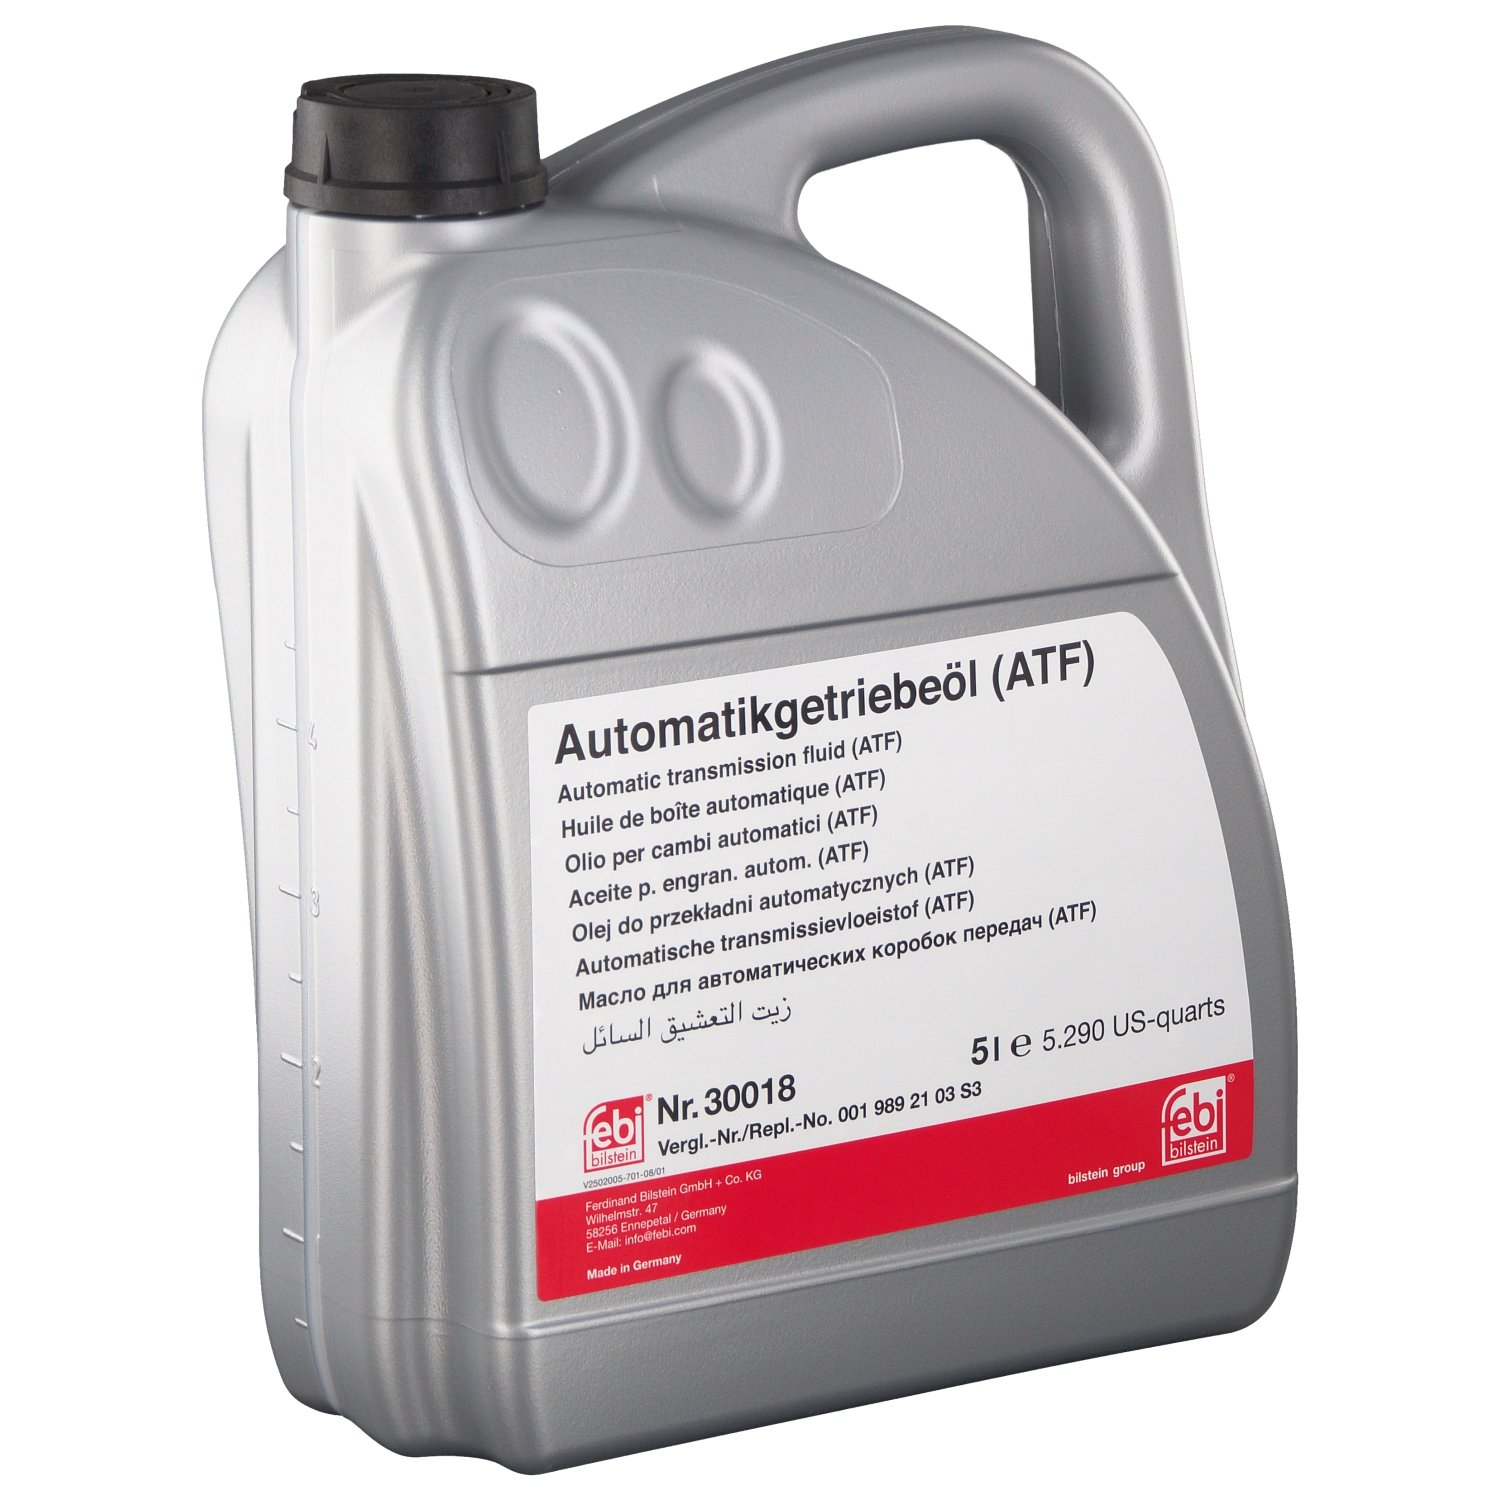 febi bilstein 30018 automatic transmission fluid (ATF) for autom. transmission, converter and hydraulic steerings - Pack of 1